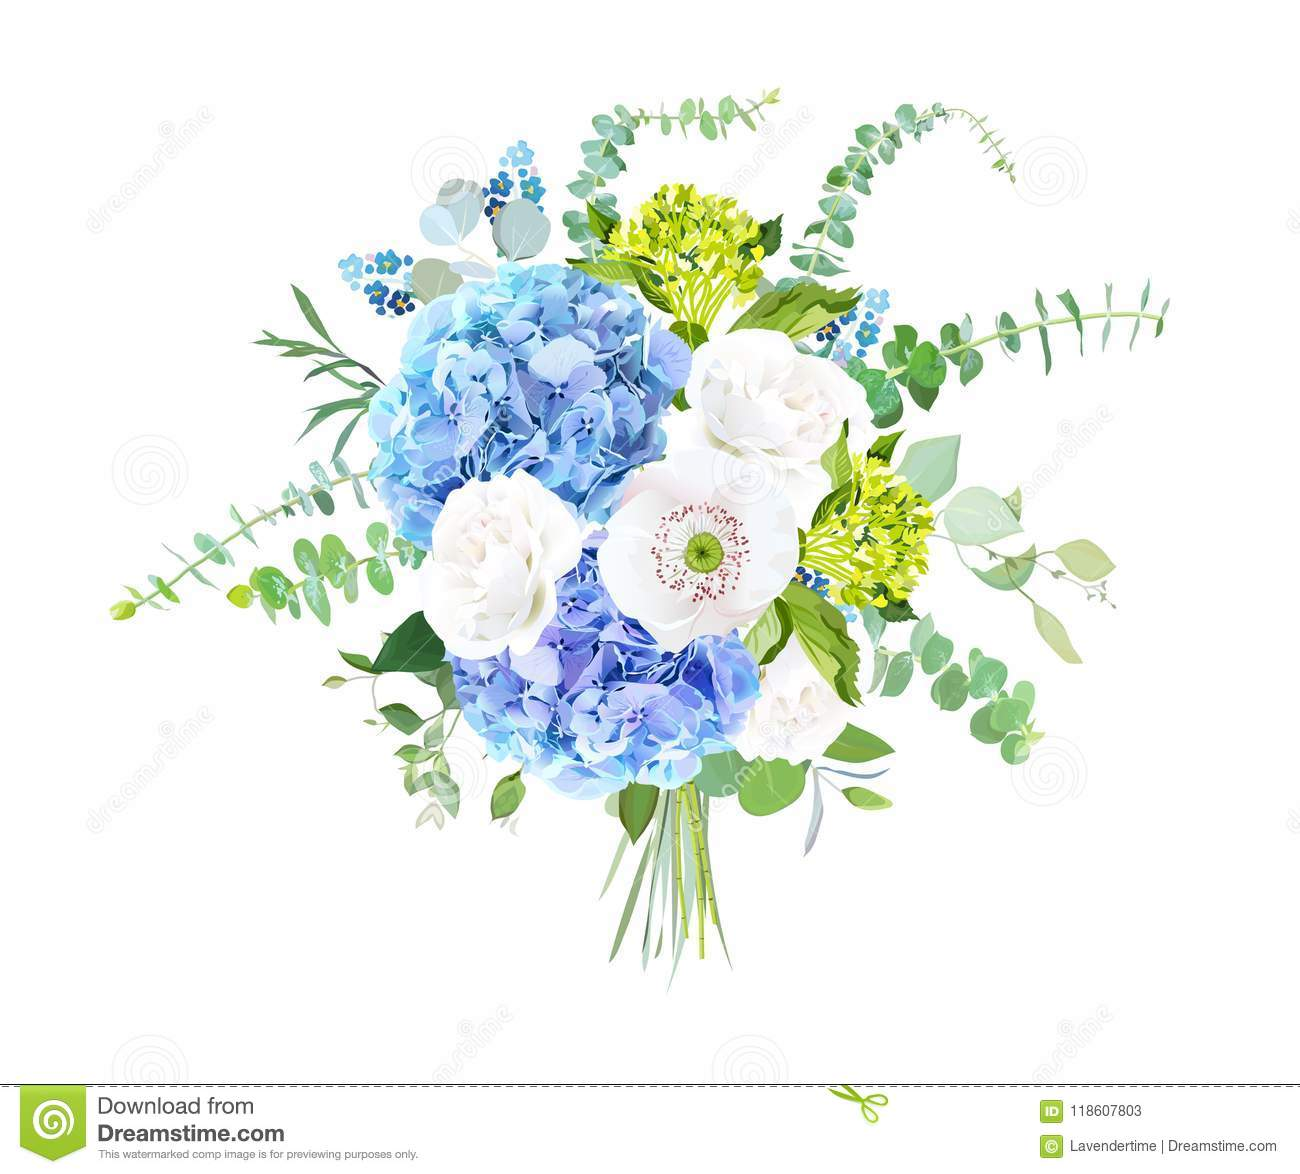 Watercolor Style Flowers Bouquet Stock Vector Illustration Of Herbal Card 118607803